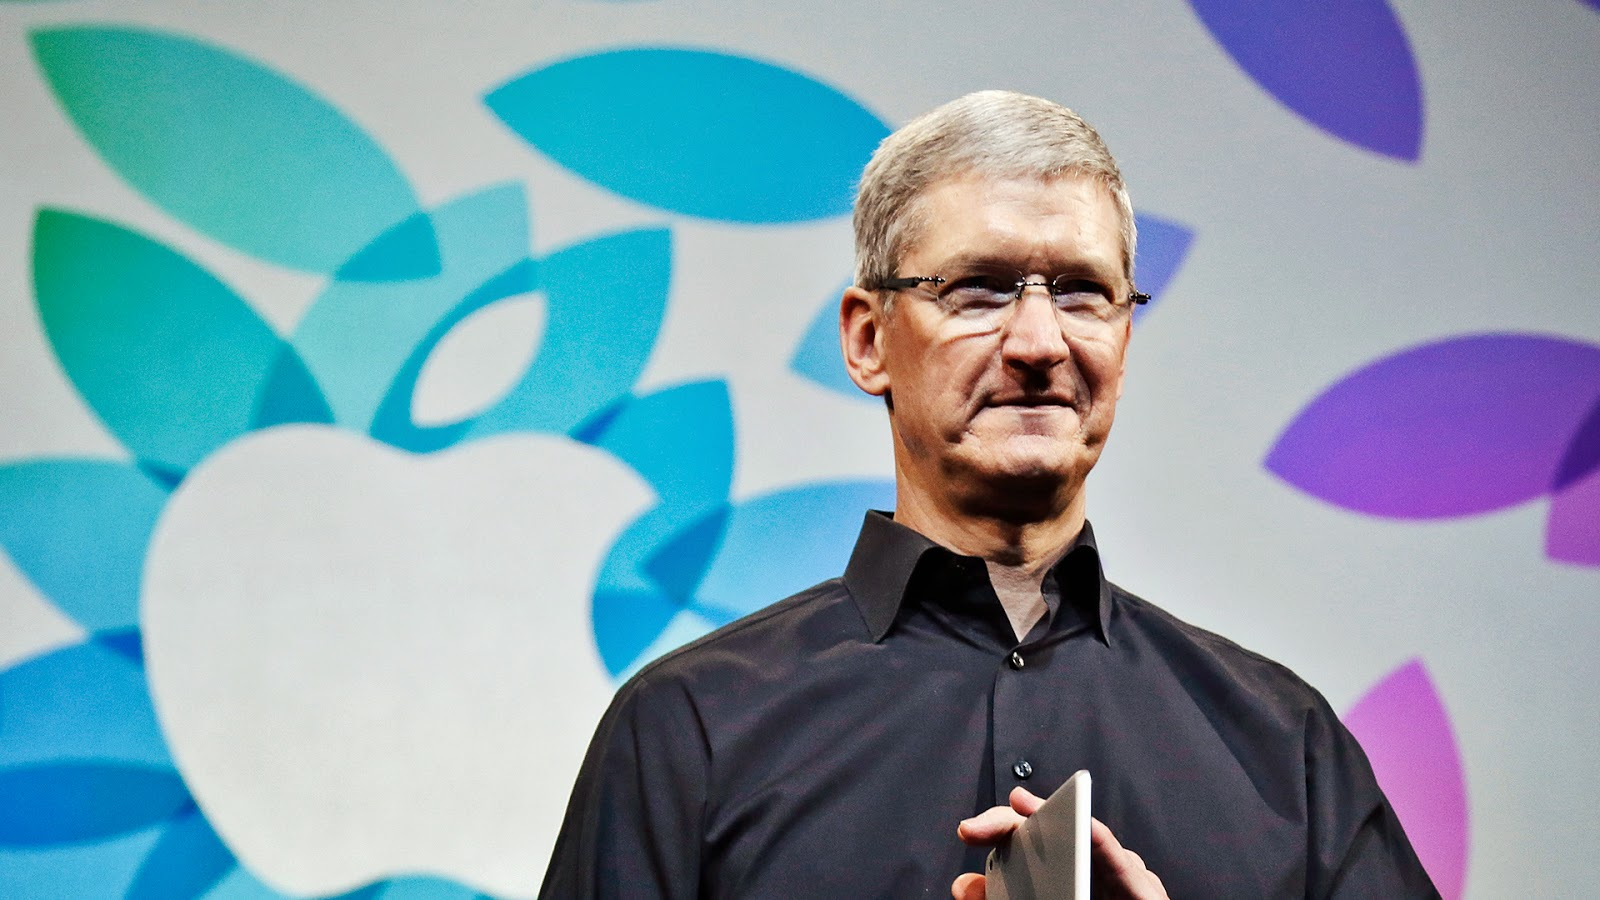 Apple Event Confirmed For March 21